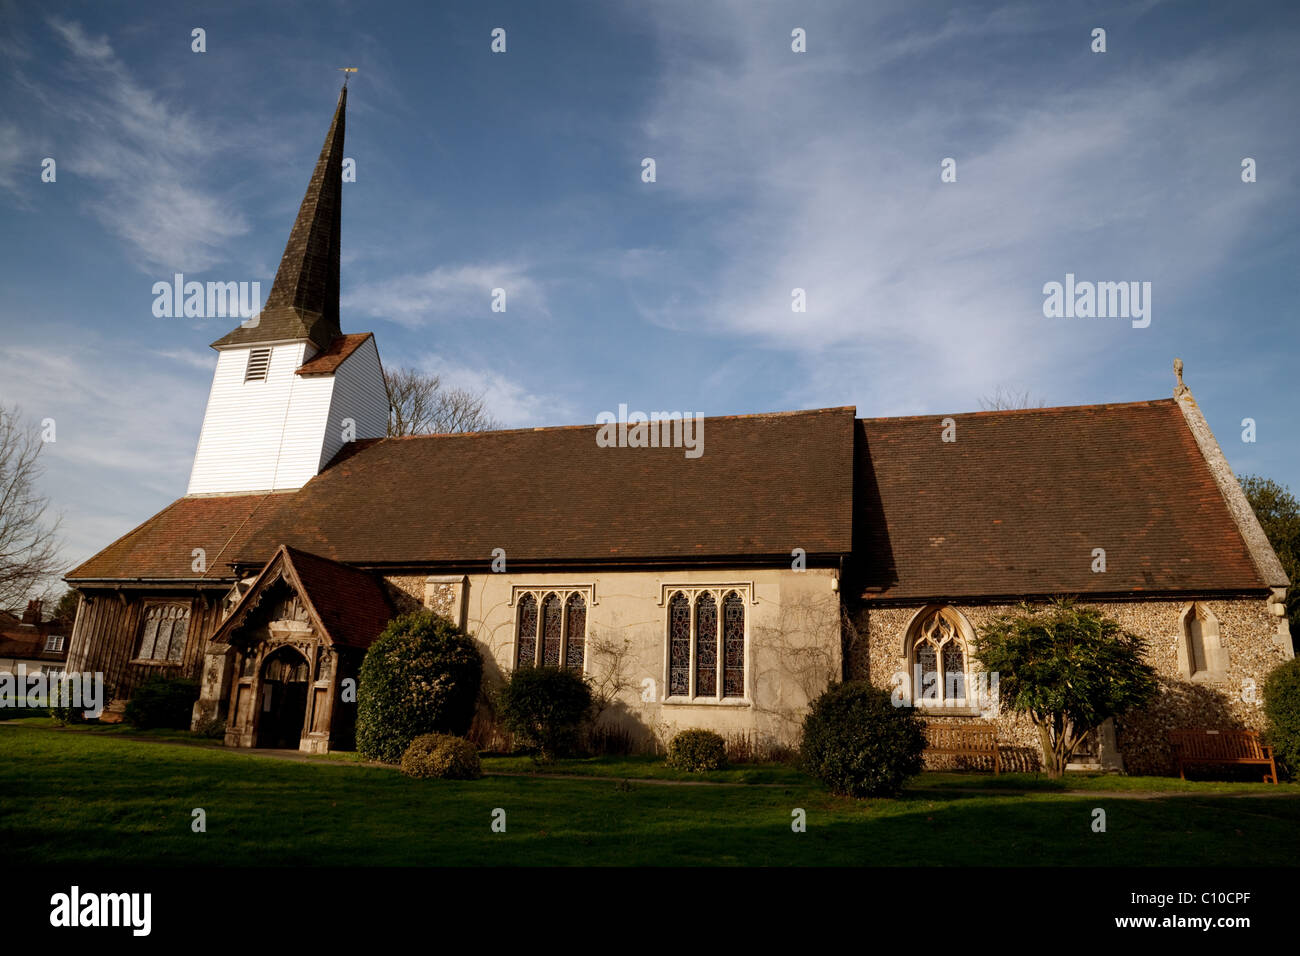 All saints Church at sunset, in the village of Stock, Essex, UK - Stock Image